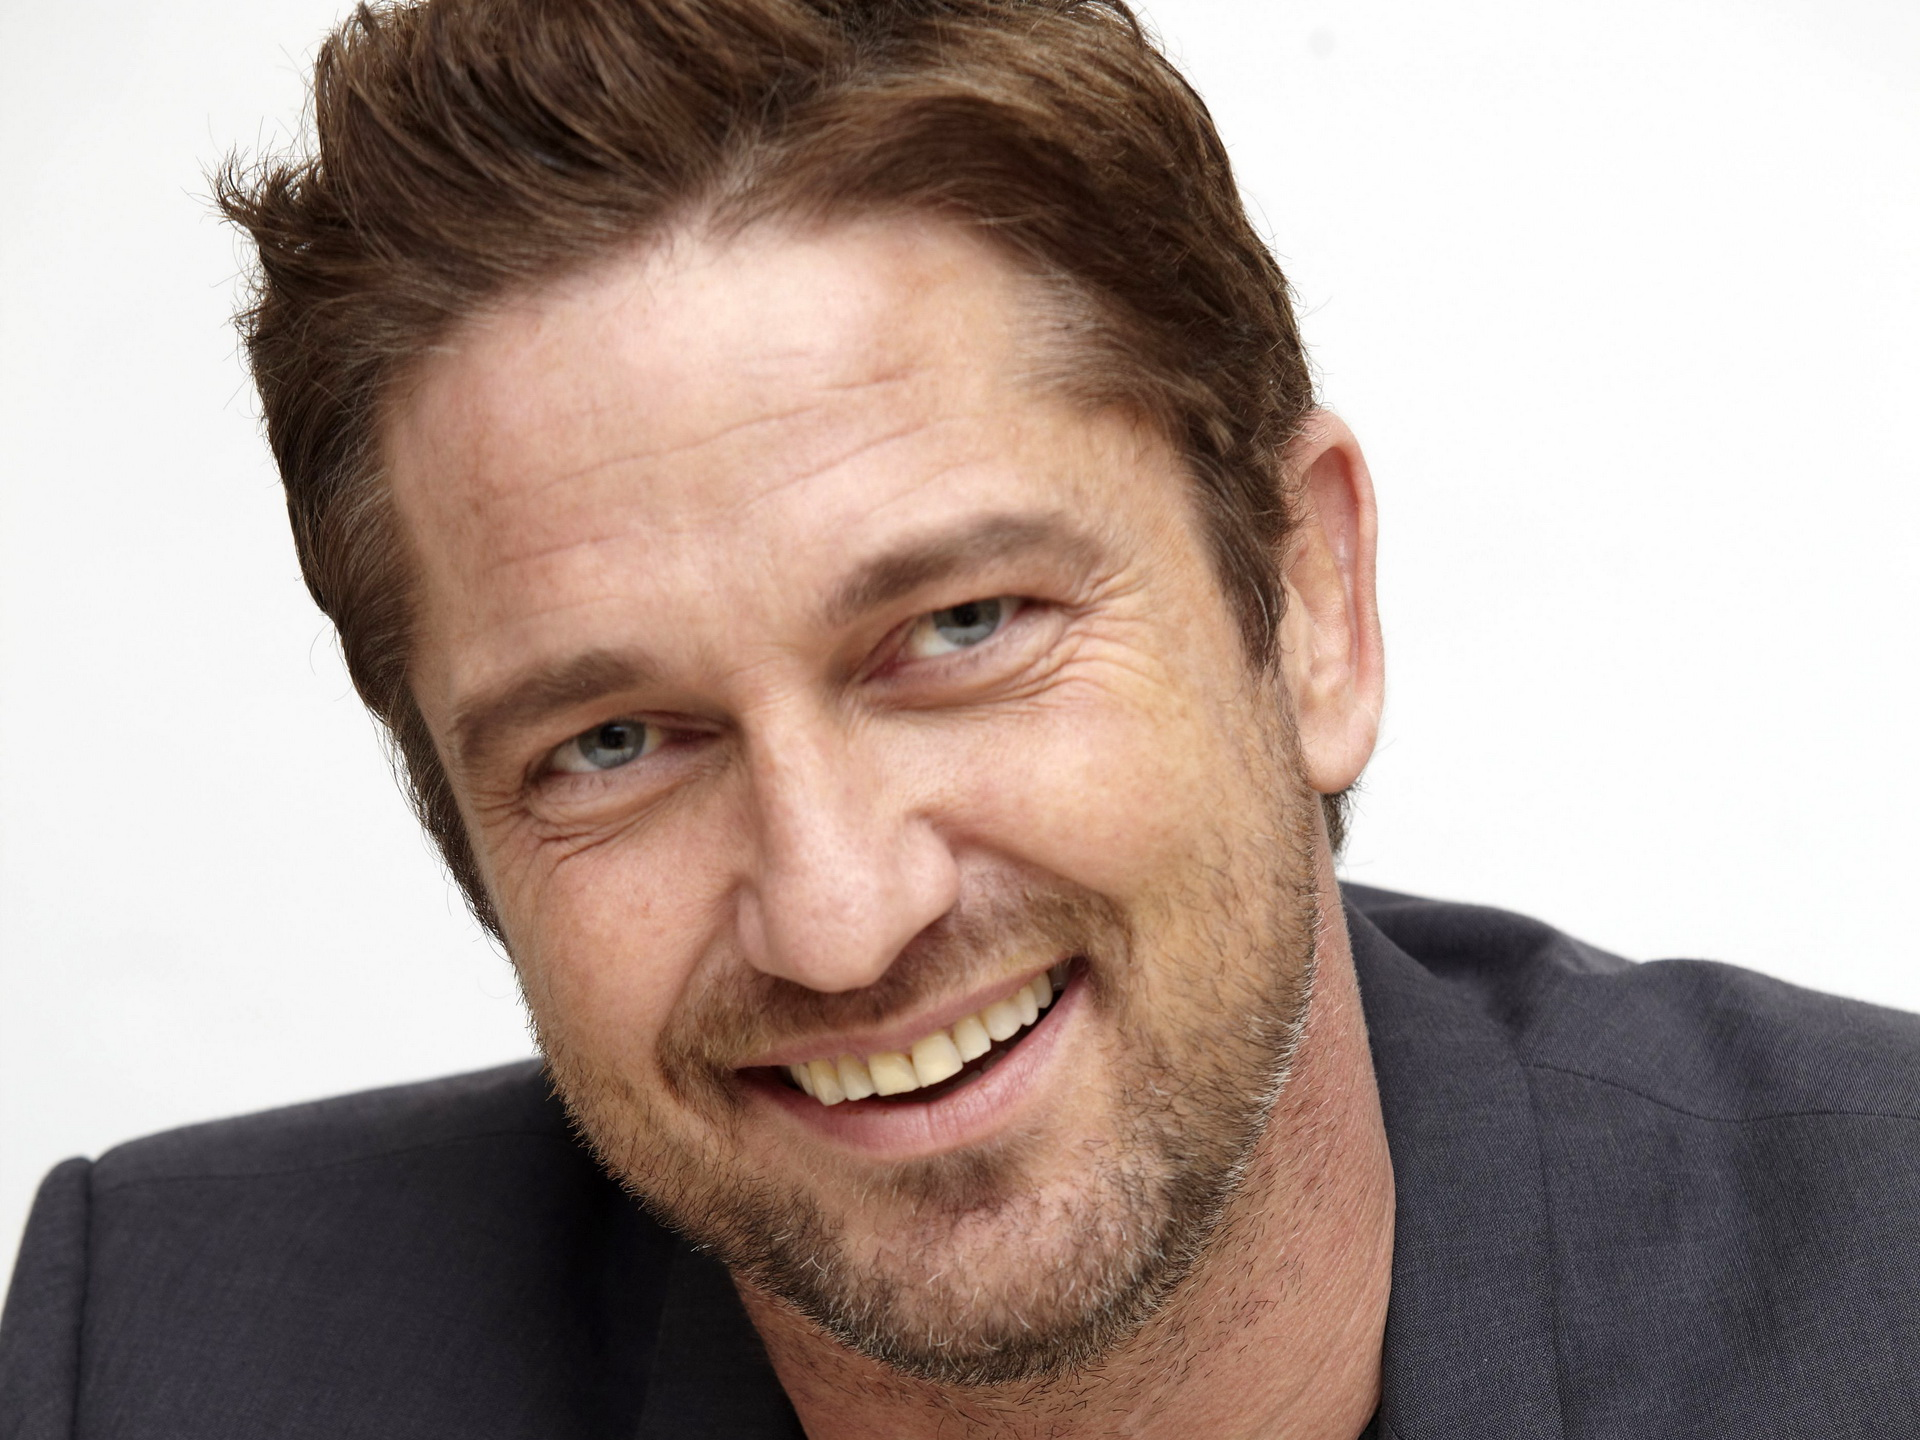 GERARD BUTLER WILL STAR IN ANGEL HAS FALLEN | Beauty And ... Gerard Butler 2016